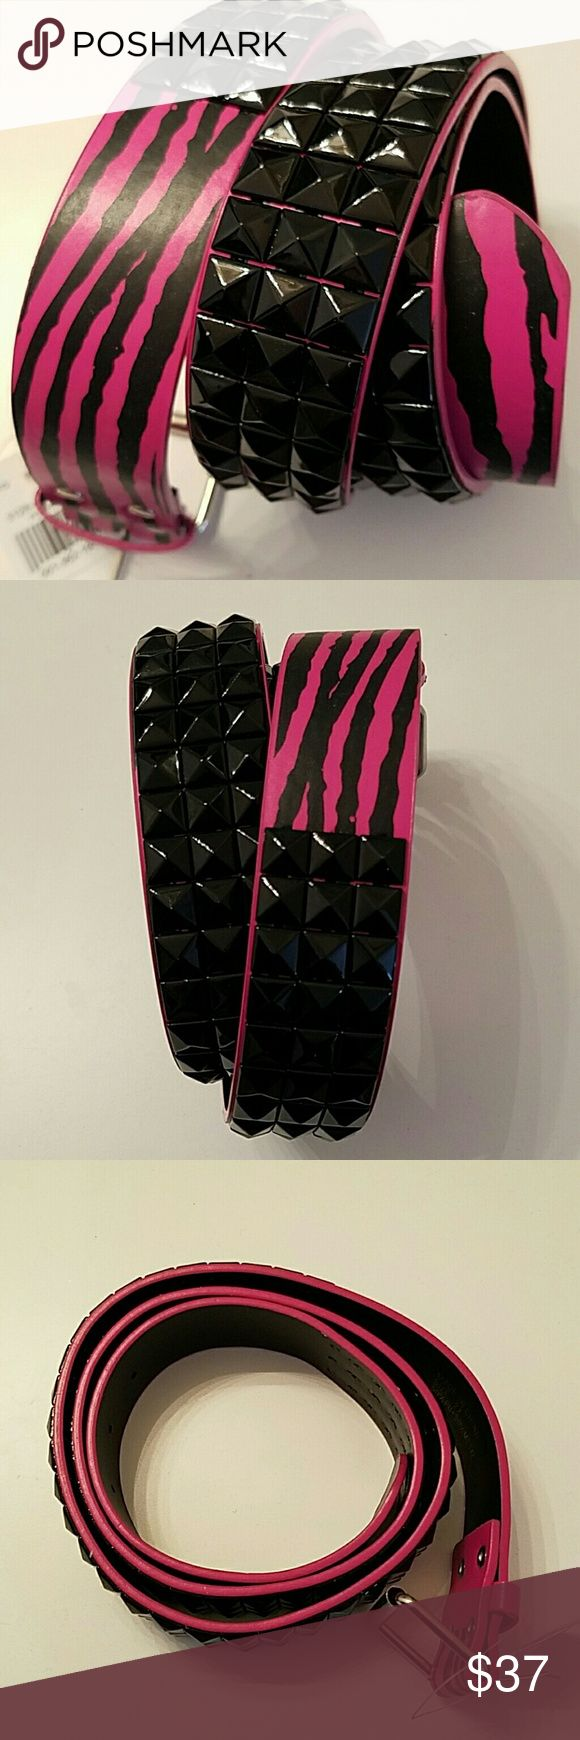 Black studded belt Zebra plus size 2X Offered is a punk fuchsia Zebra print belt with triple row black pyramid studs. New with tags and in immaculate condition. Plus size 2X. Add a little hardcore bling to any outfit. Pyramid studs show minimal shelf wear from being in my belt drawer but it's not noticeable during wear. Accessories Belts